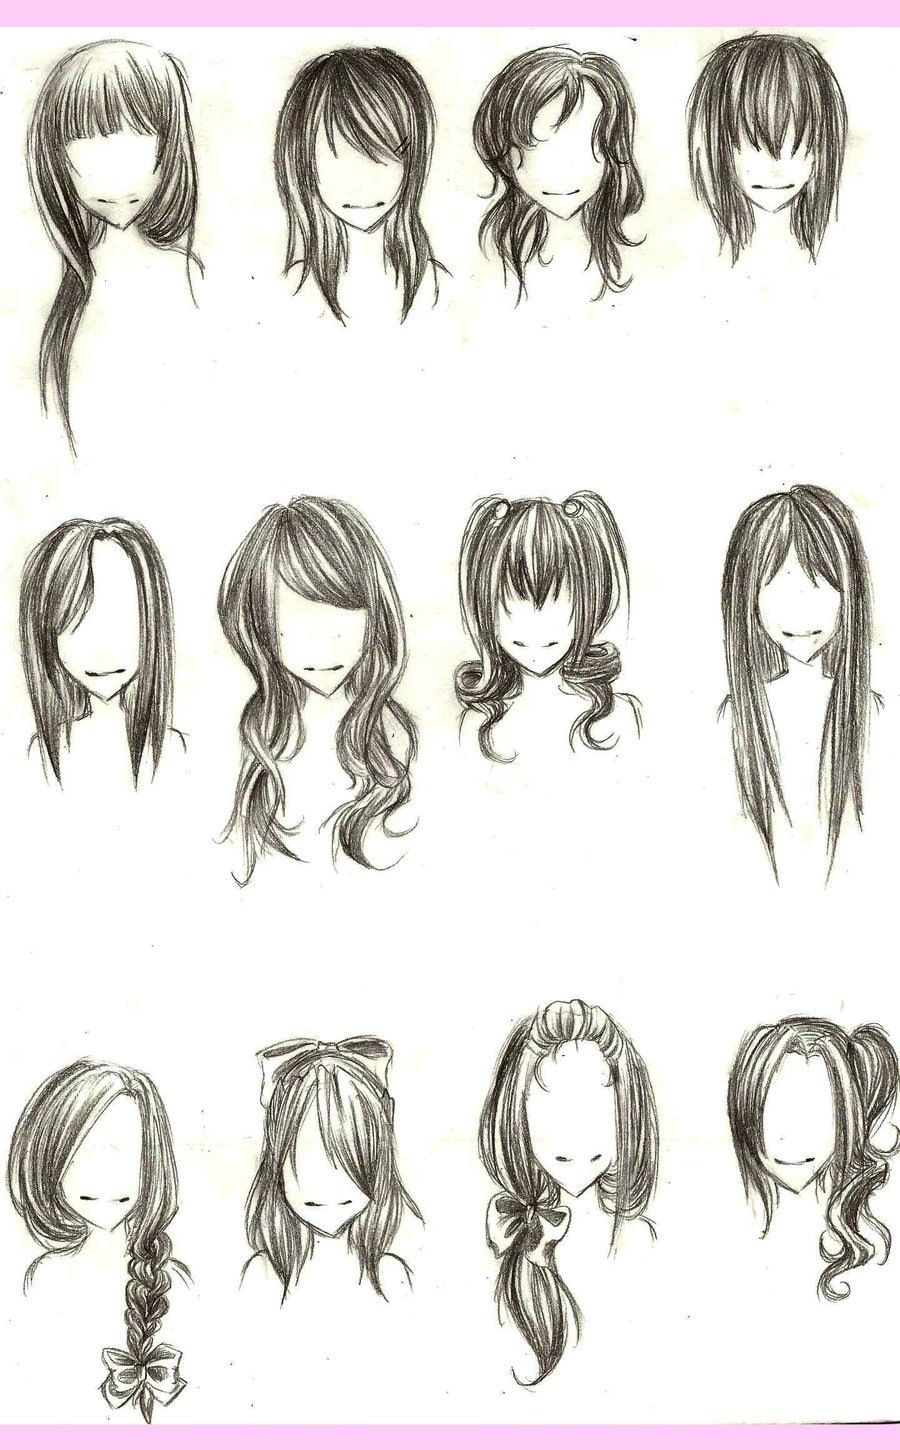 ✷for referents when drawing some different hair styles